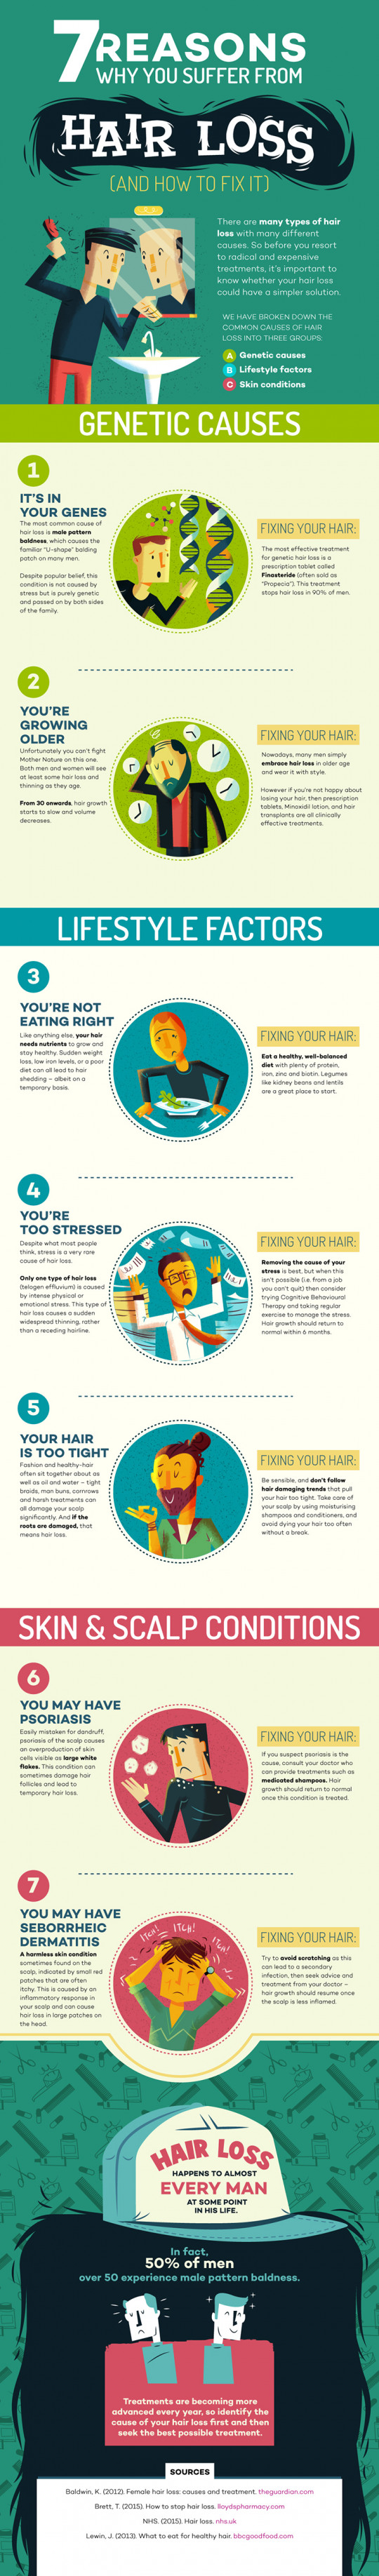 7 Male hair loss causes (and how to fix them)